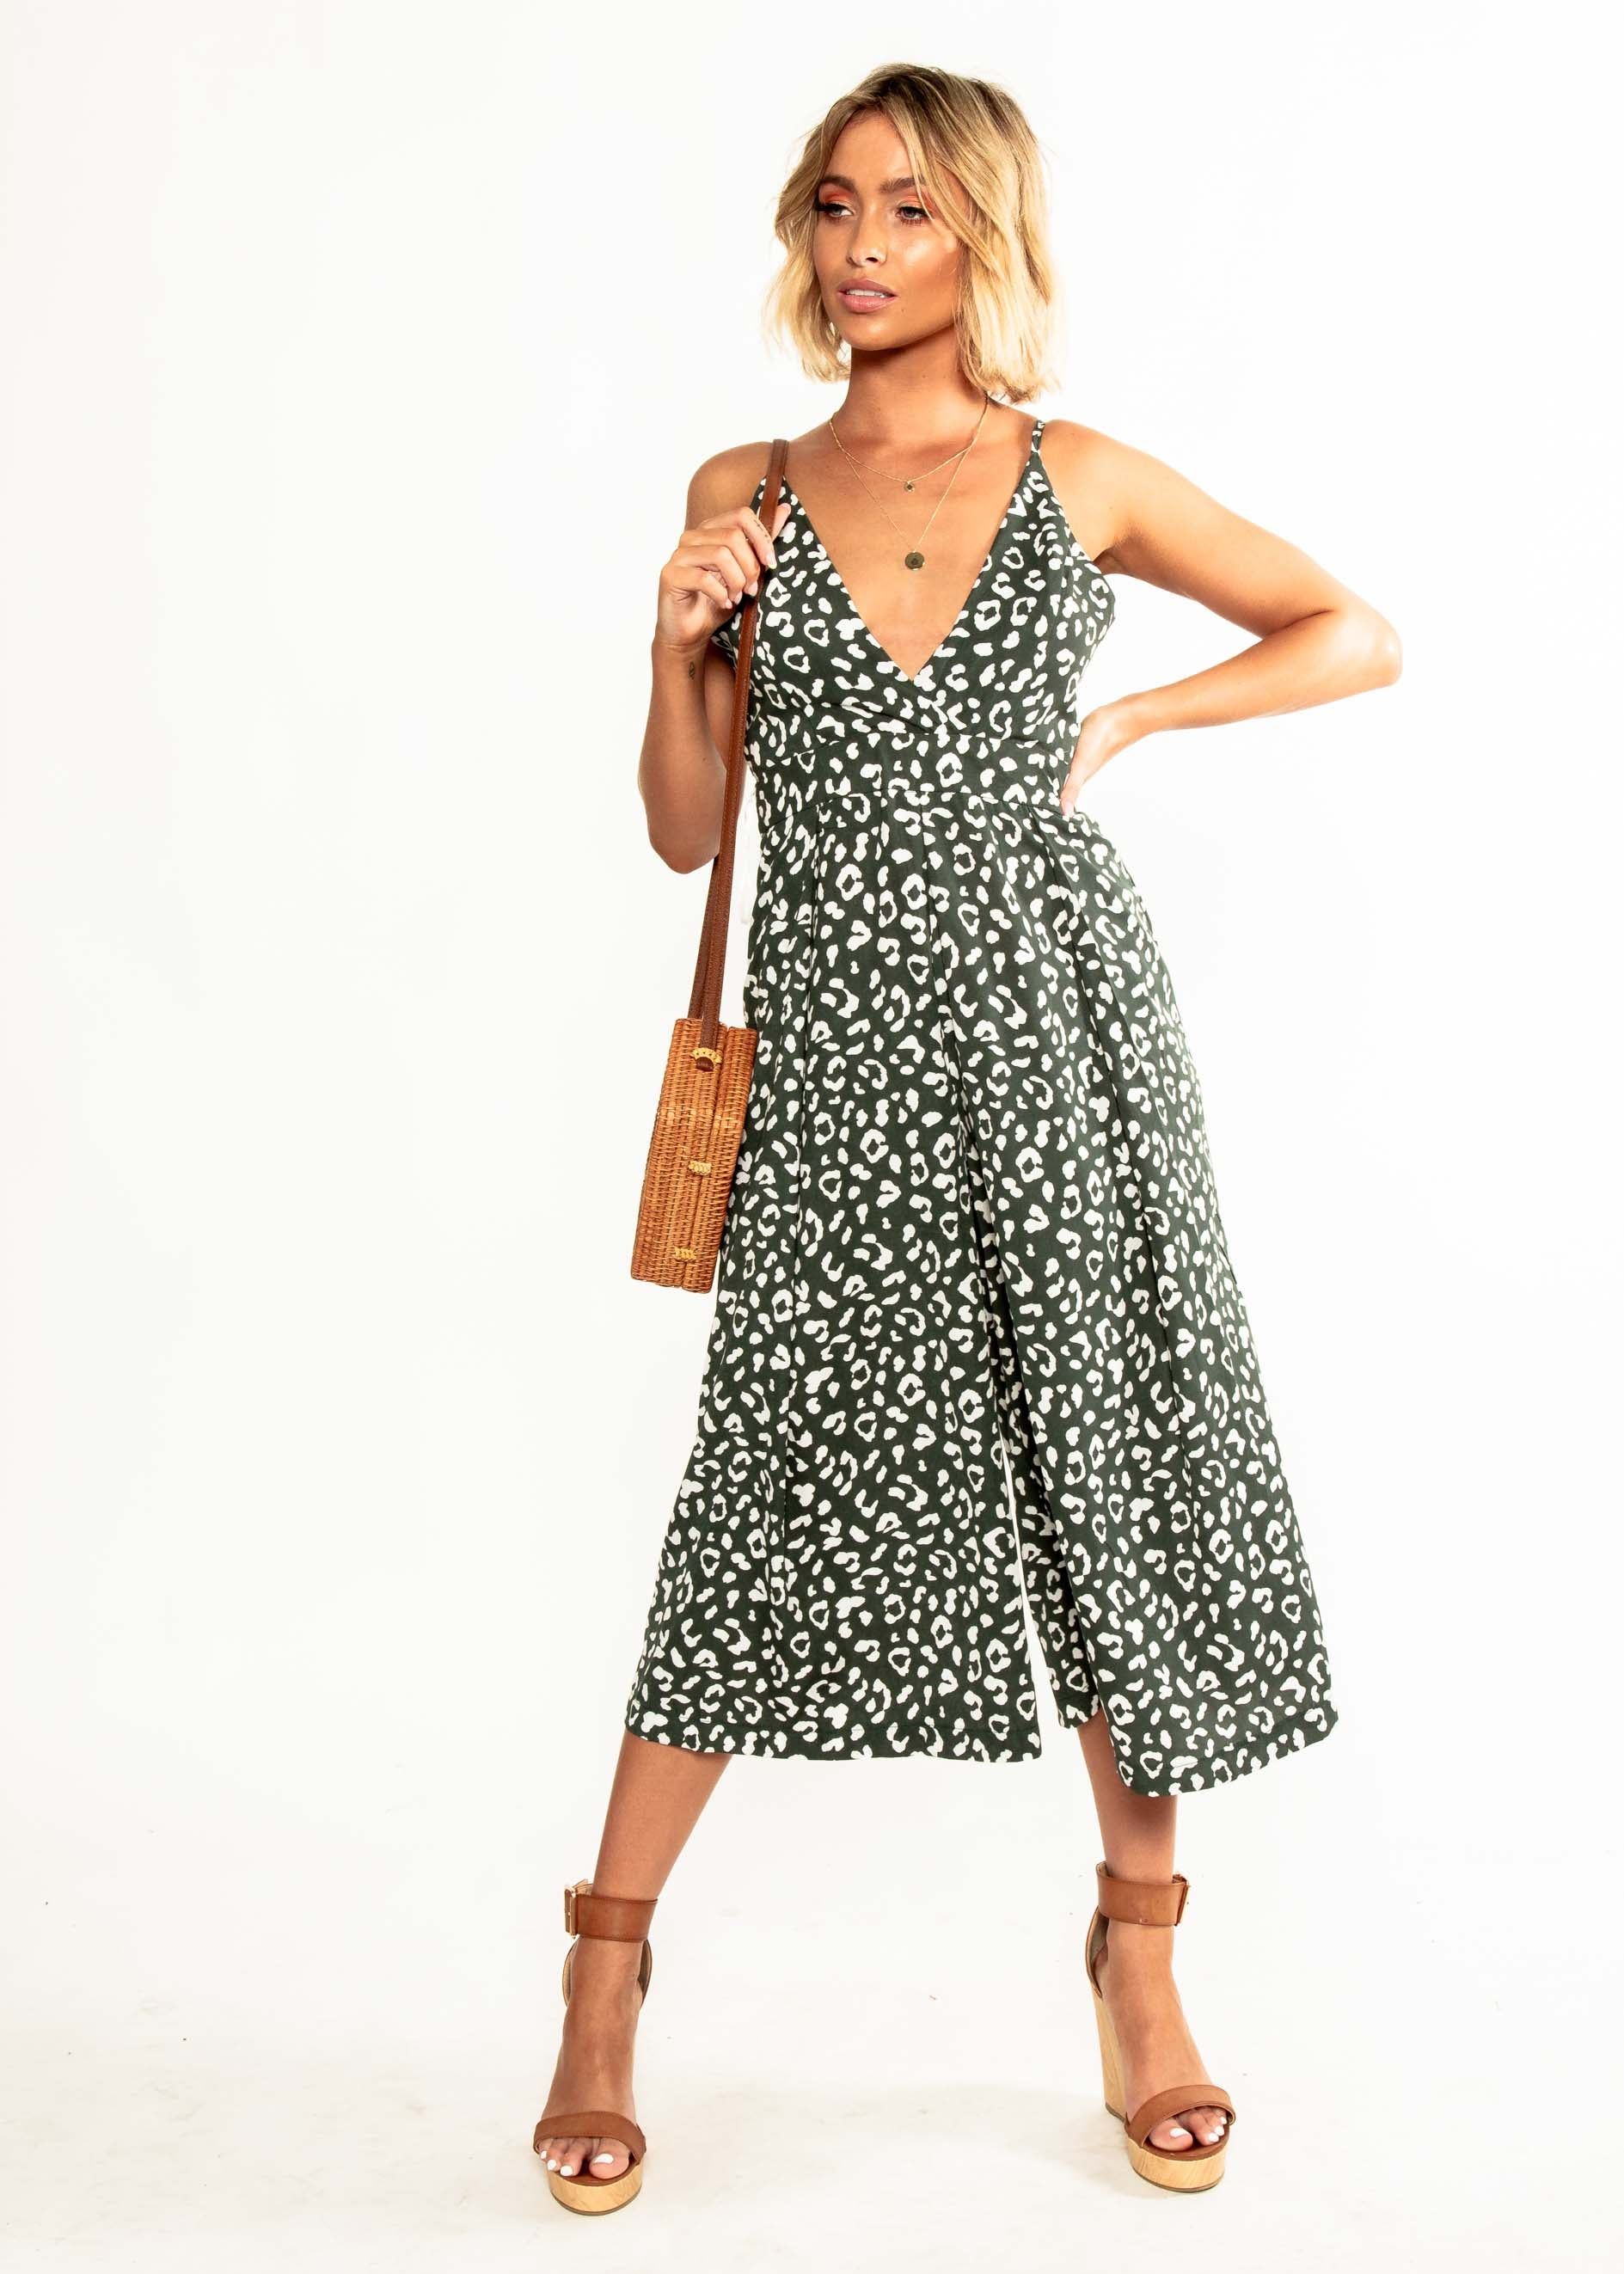 Your Muse Pantsuit - Emerald Leopard